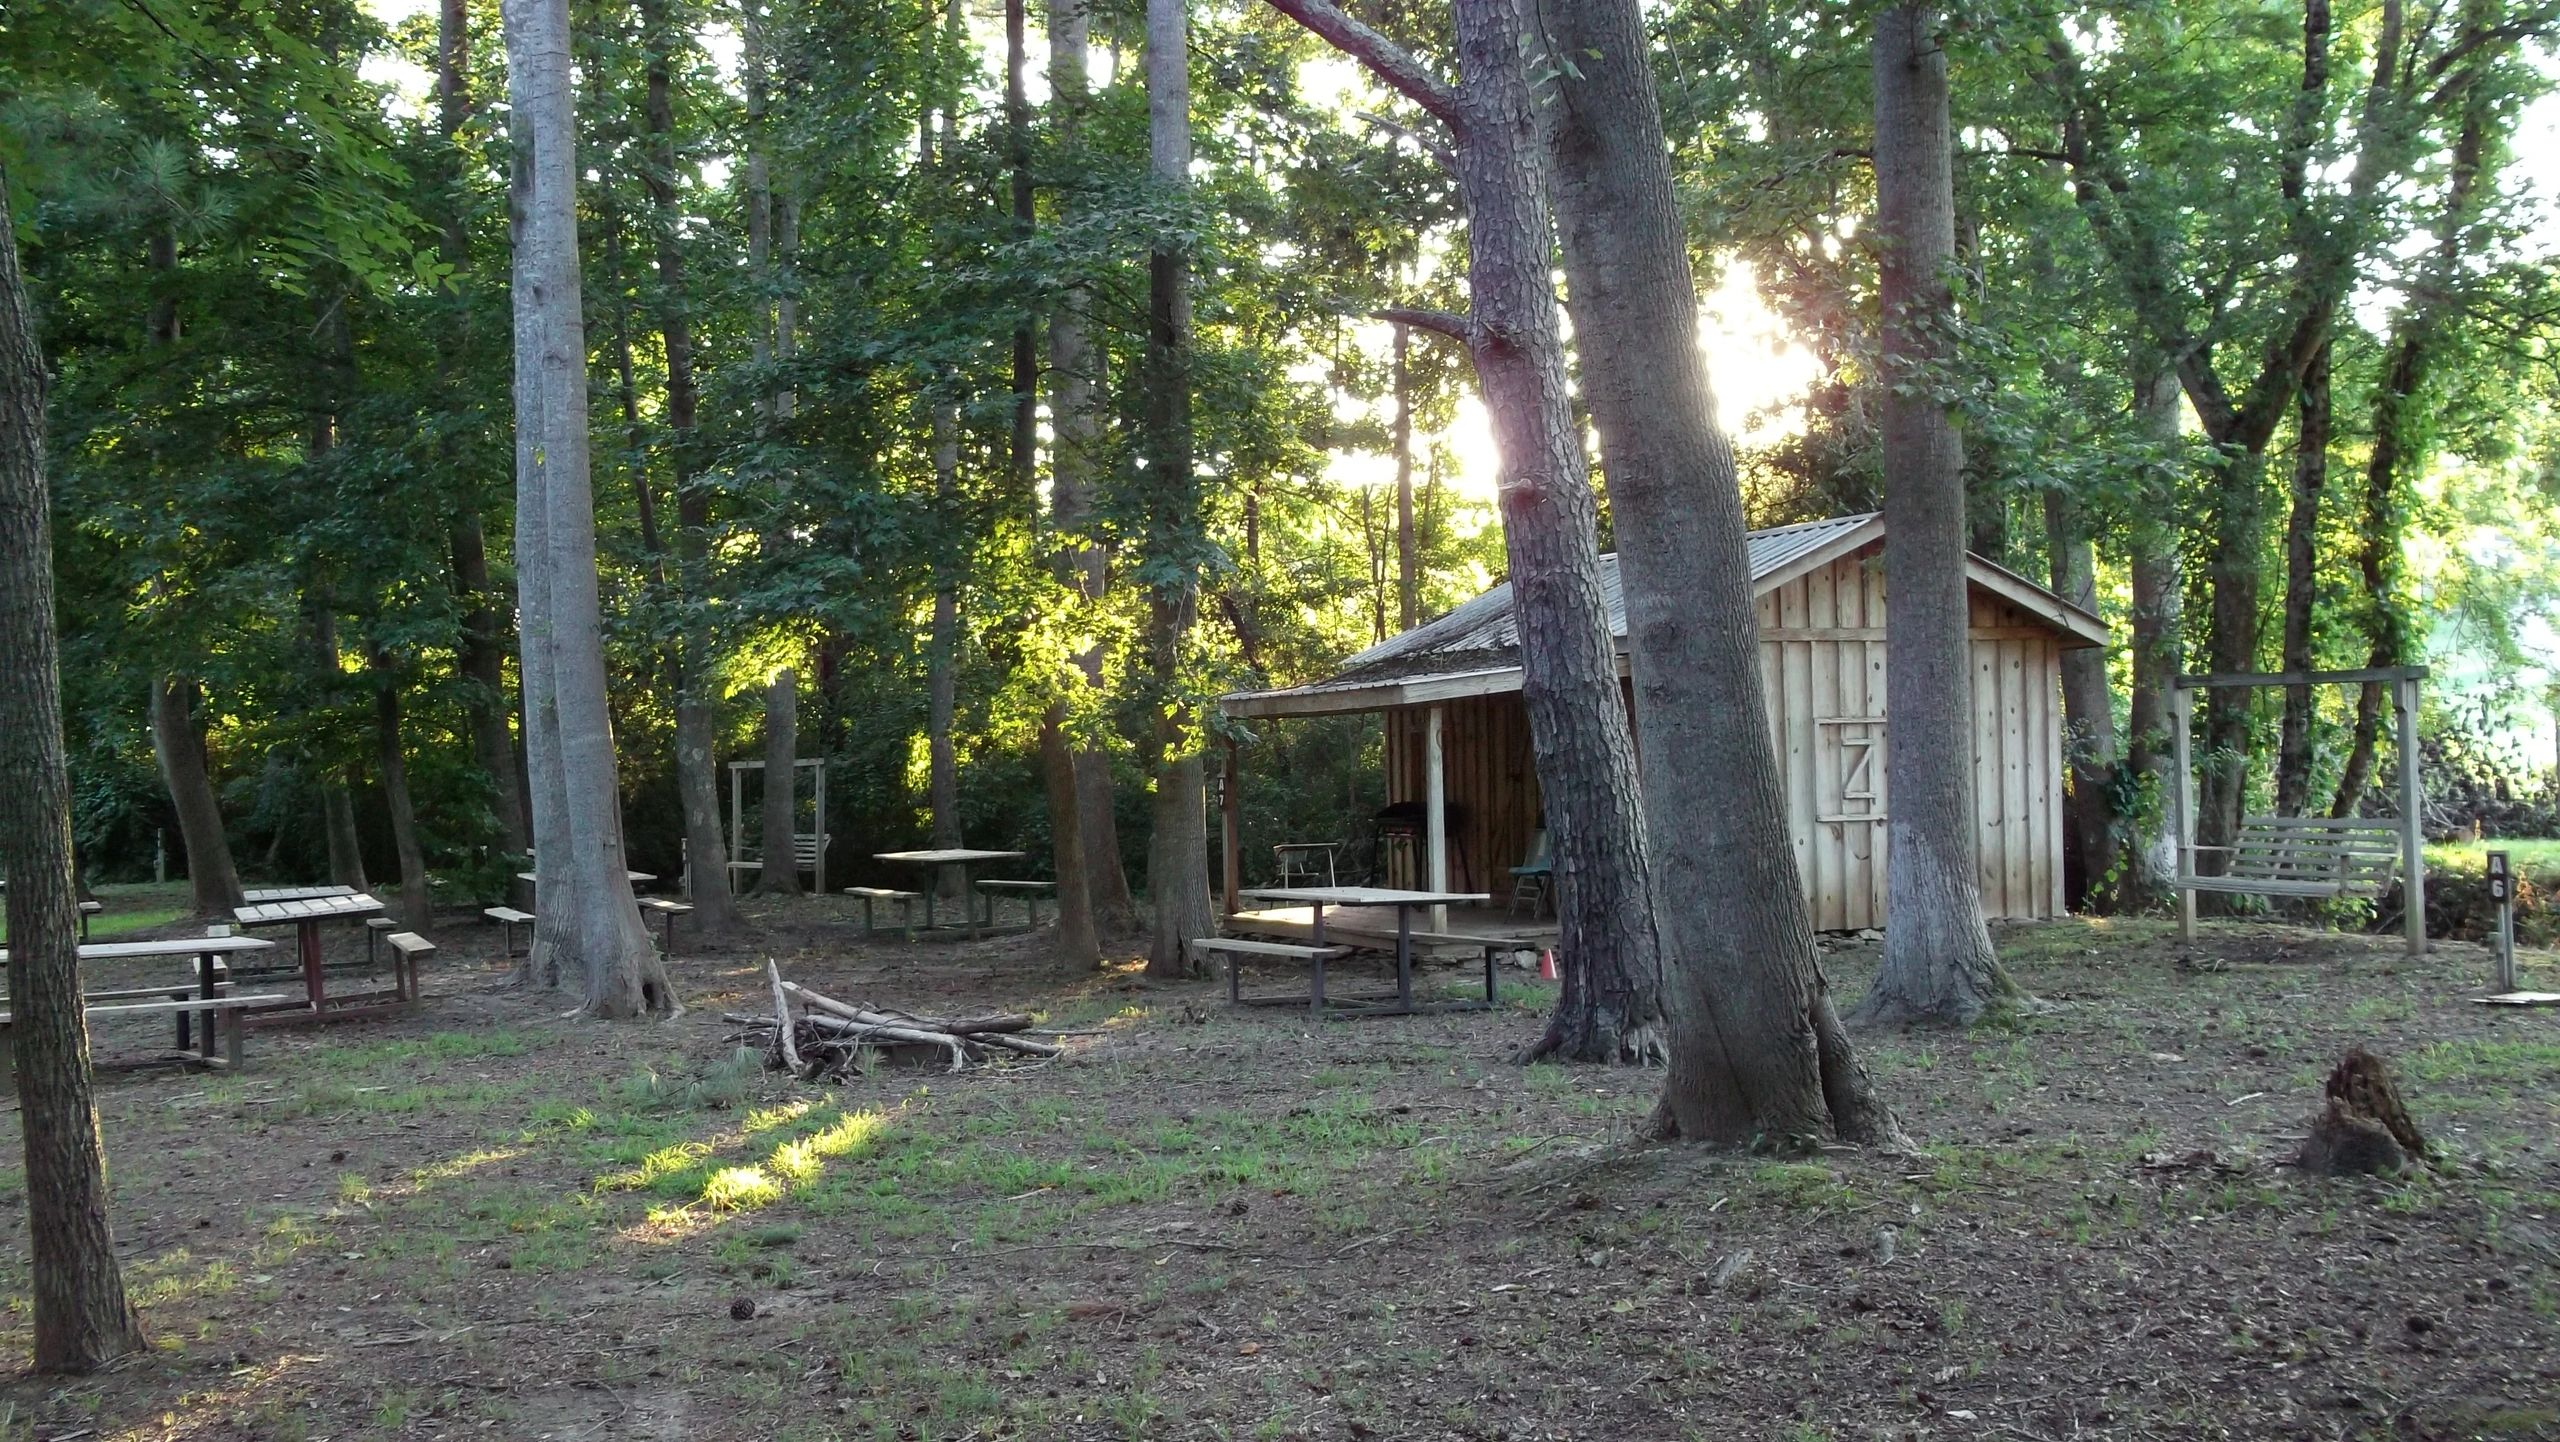 "{""blocks"":[{""key"":""2cgr5"",""text"":""Overlook Cabins\nThe Overlook Cabins are our newest addition to The Rock Campground. Perfect for a quiet weekend getaway. The cabins overlook section C of the campground and face the beautiful North Georgia foothills (a beautiful site especially in spring when trees blooms or in the fall when the leaves change). We have 2 cabins to choose from that are just slightly different. The cabins have a kitchenette, full bathrooms, a living area with television and cable, a private bedroom with a full size bed, bunk beds for children, central heat and air, and a nice covered porch with seating. Our cabins are SMOKE FREE and PET FREE. We cannot allow smoking or animals inside the cabins. Please call us for pricing (seasonal) and availability. If you're interested in the overlook cabins, please bring your own cooking utensils. We do not provide pots, pans, or cooking spatulas or other cookware. They come with a coffee maker, filters, and some mugs (So don't forget your creamer and sugar!). We do have spoons, knives, forks, but everything else is up to you to bring.  "",""type"":""unstyled"",""depth"":0,""inlineStyleRanges"":[{""offset"":0,""length"":15,""style"":""BOLD""},{""offset"":0,""length"":15,""style"":""UNDERLINE""}],""entityRanges"":[],""data"":{}}],""entityMap"":{}}"